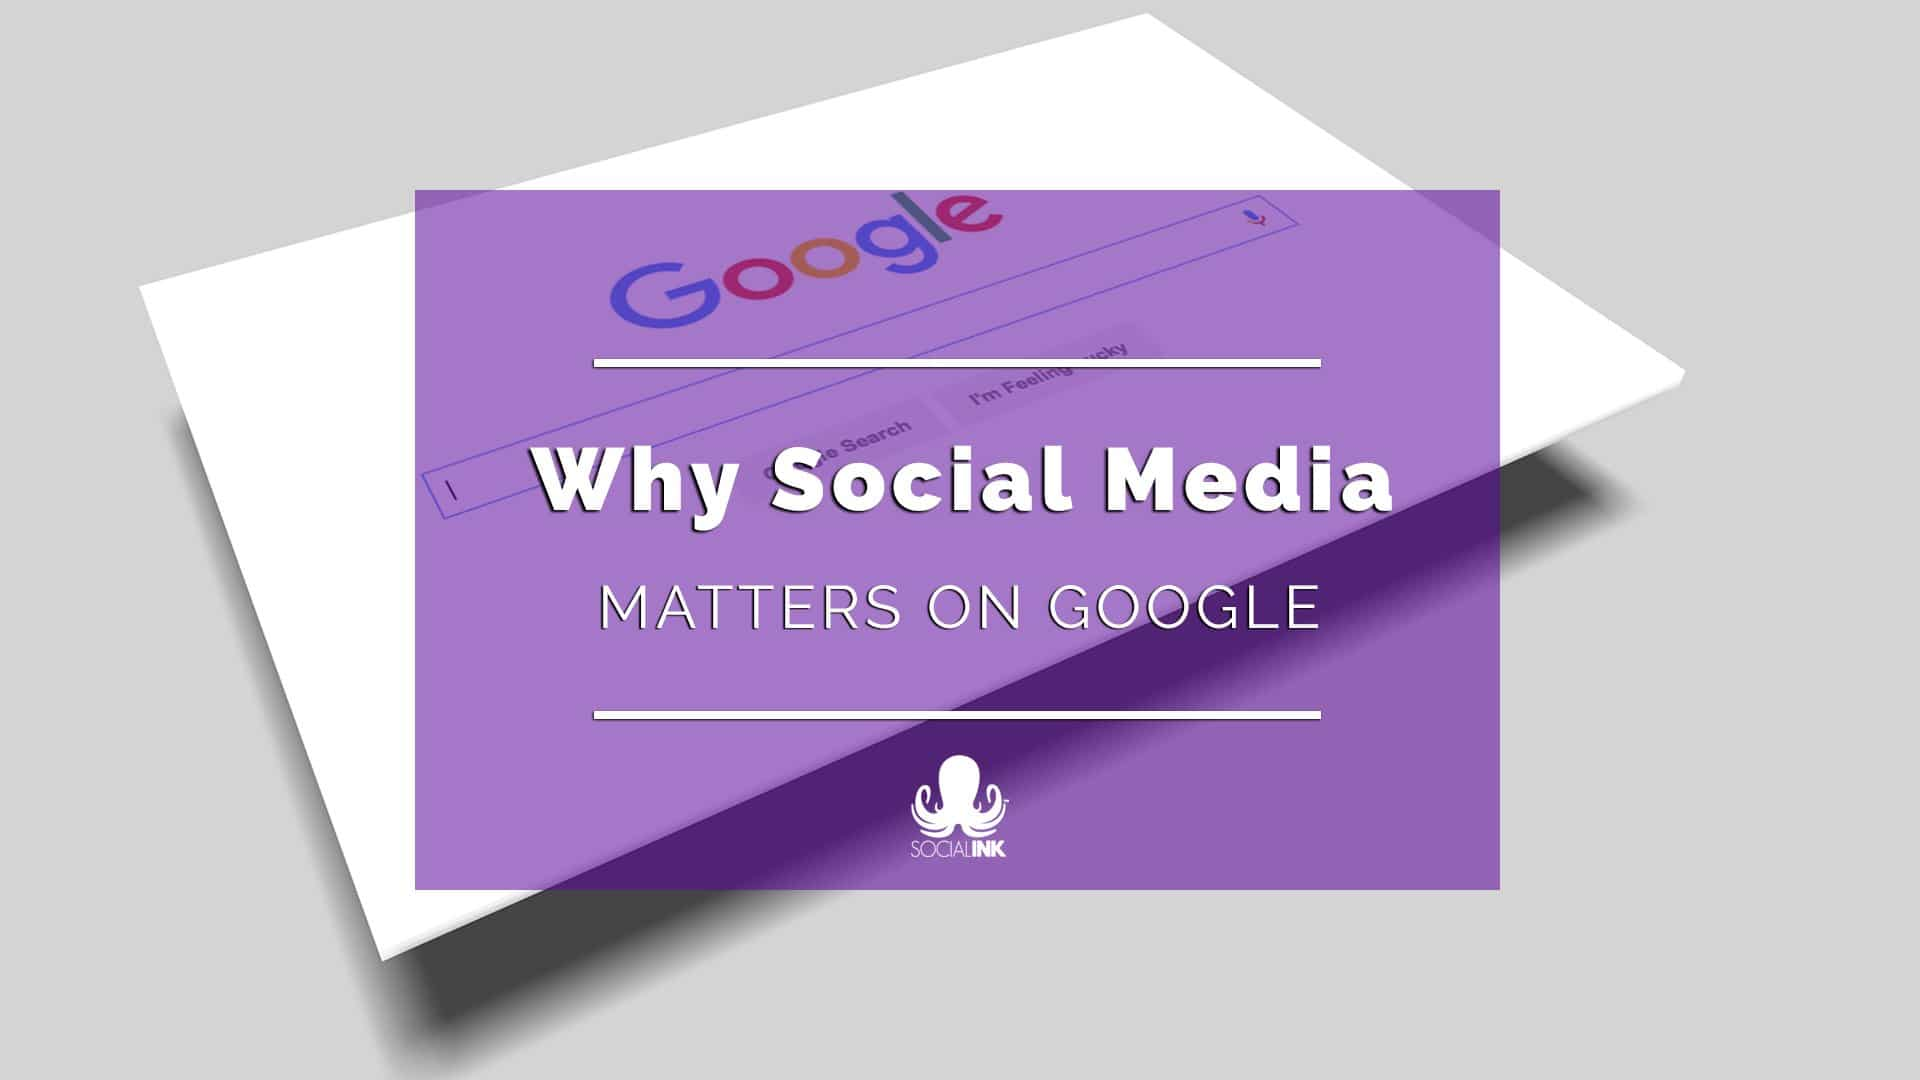 Why Social Media Matters On Google